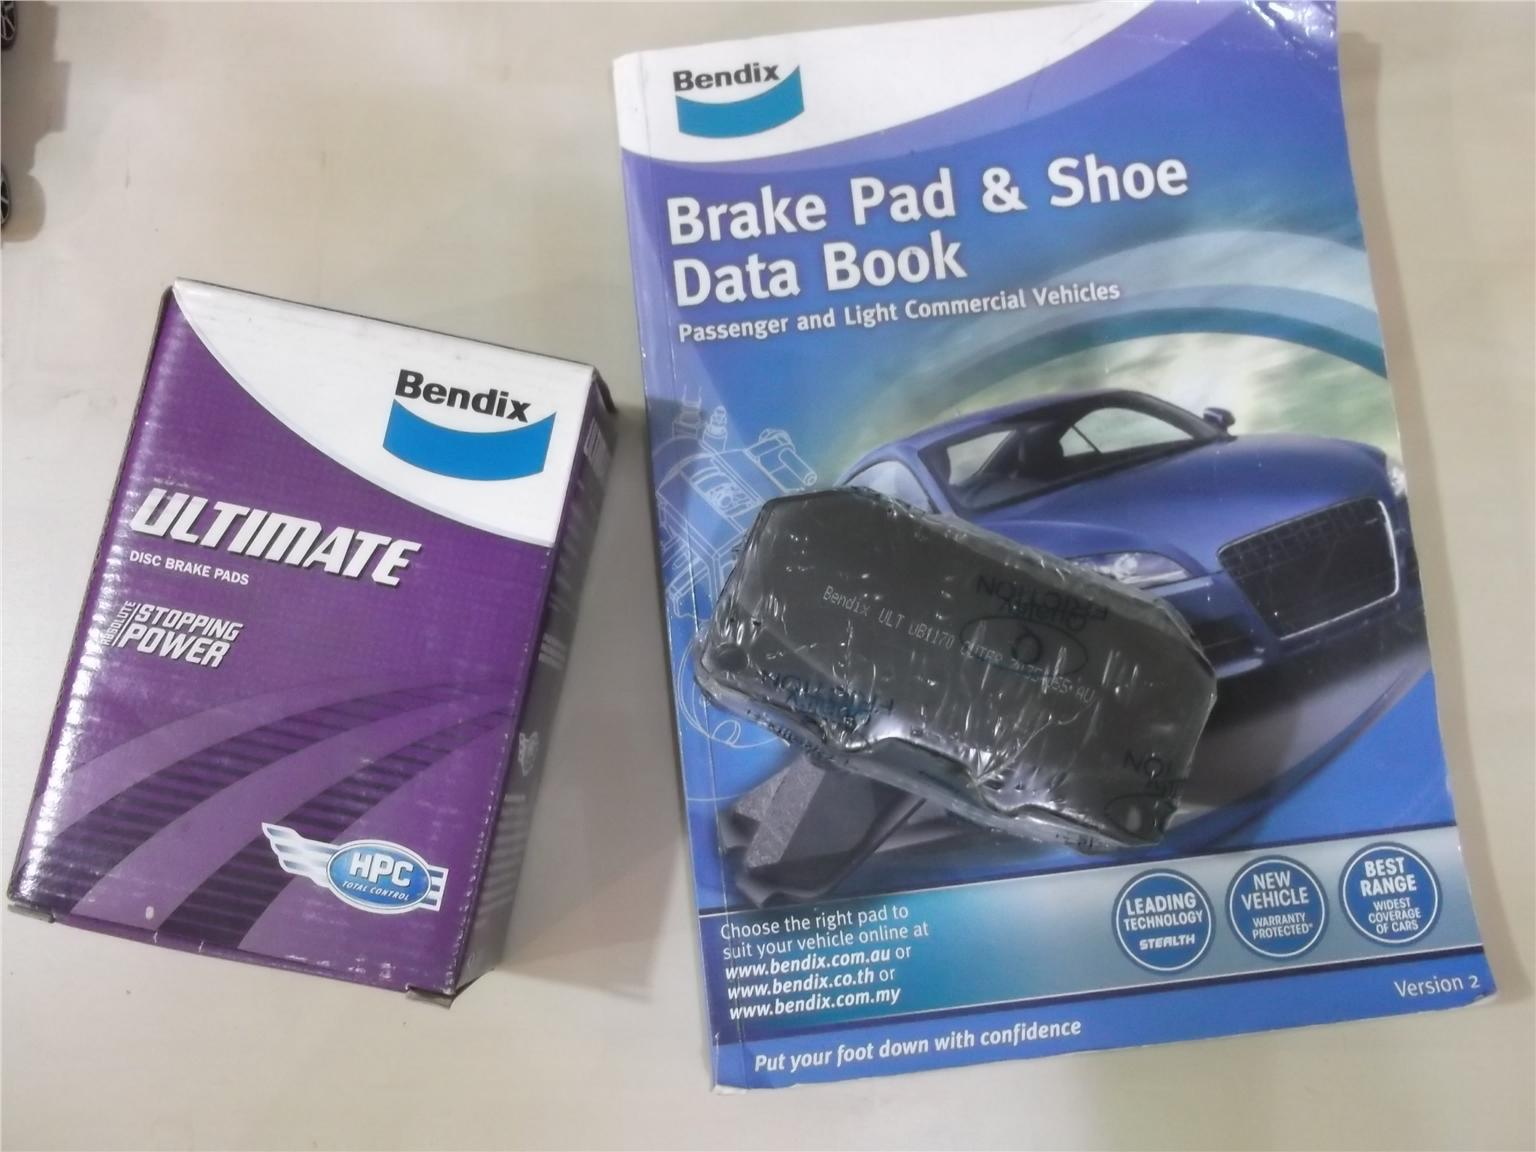 BENDIX ULTIMATE FRONT BRAKE PAD FOR NISSAN/SUBARU 4 POT